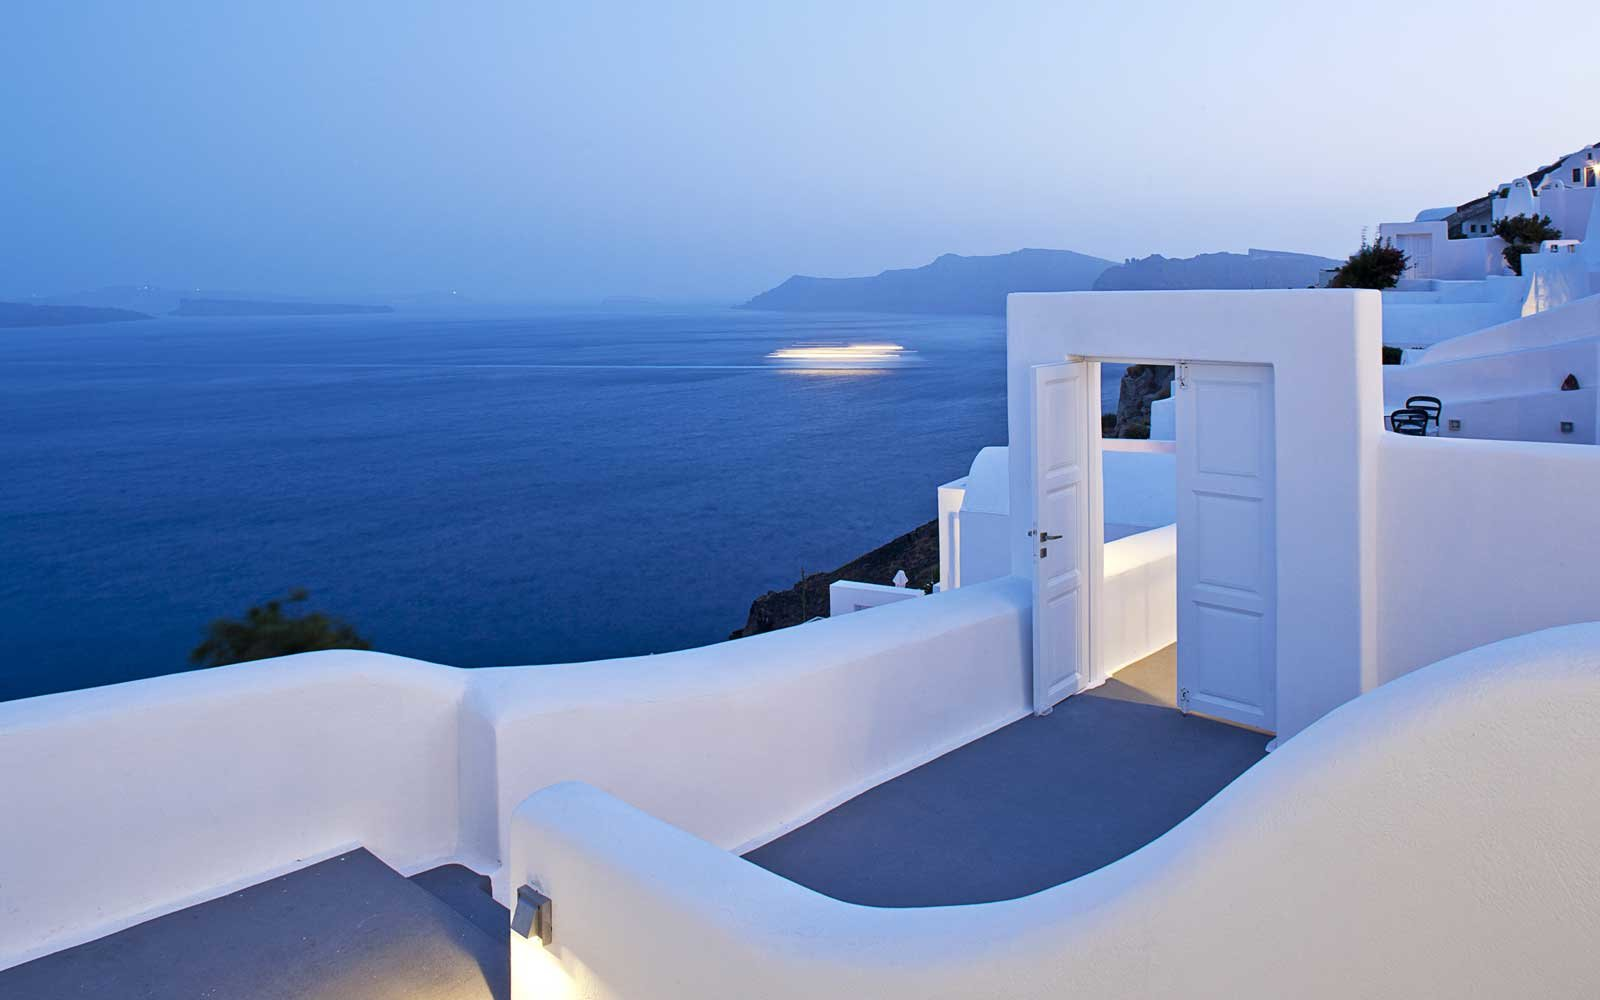 Top Romantic Hotels: Canaves Oia, Santorini, Greece